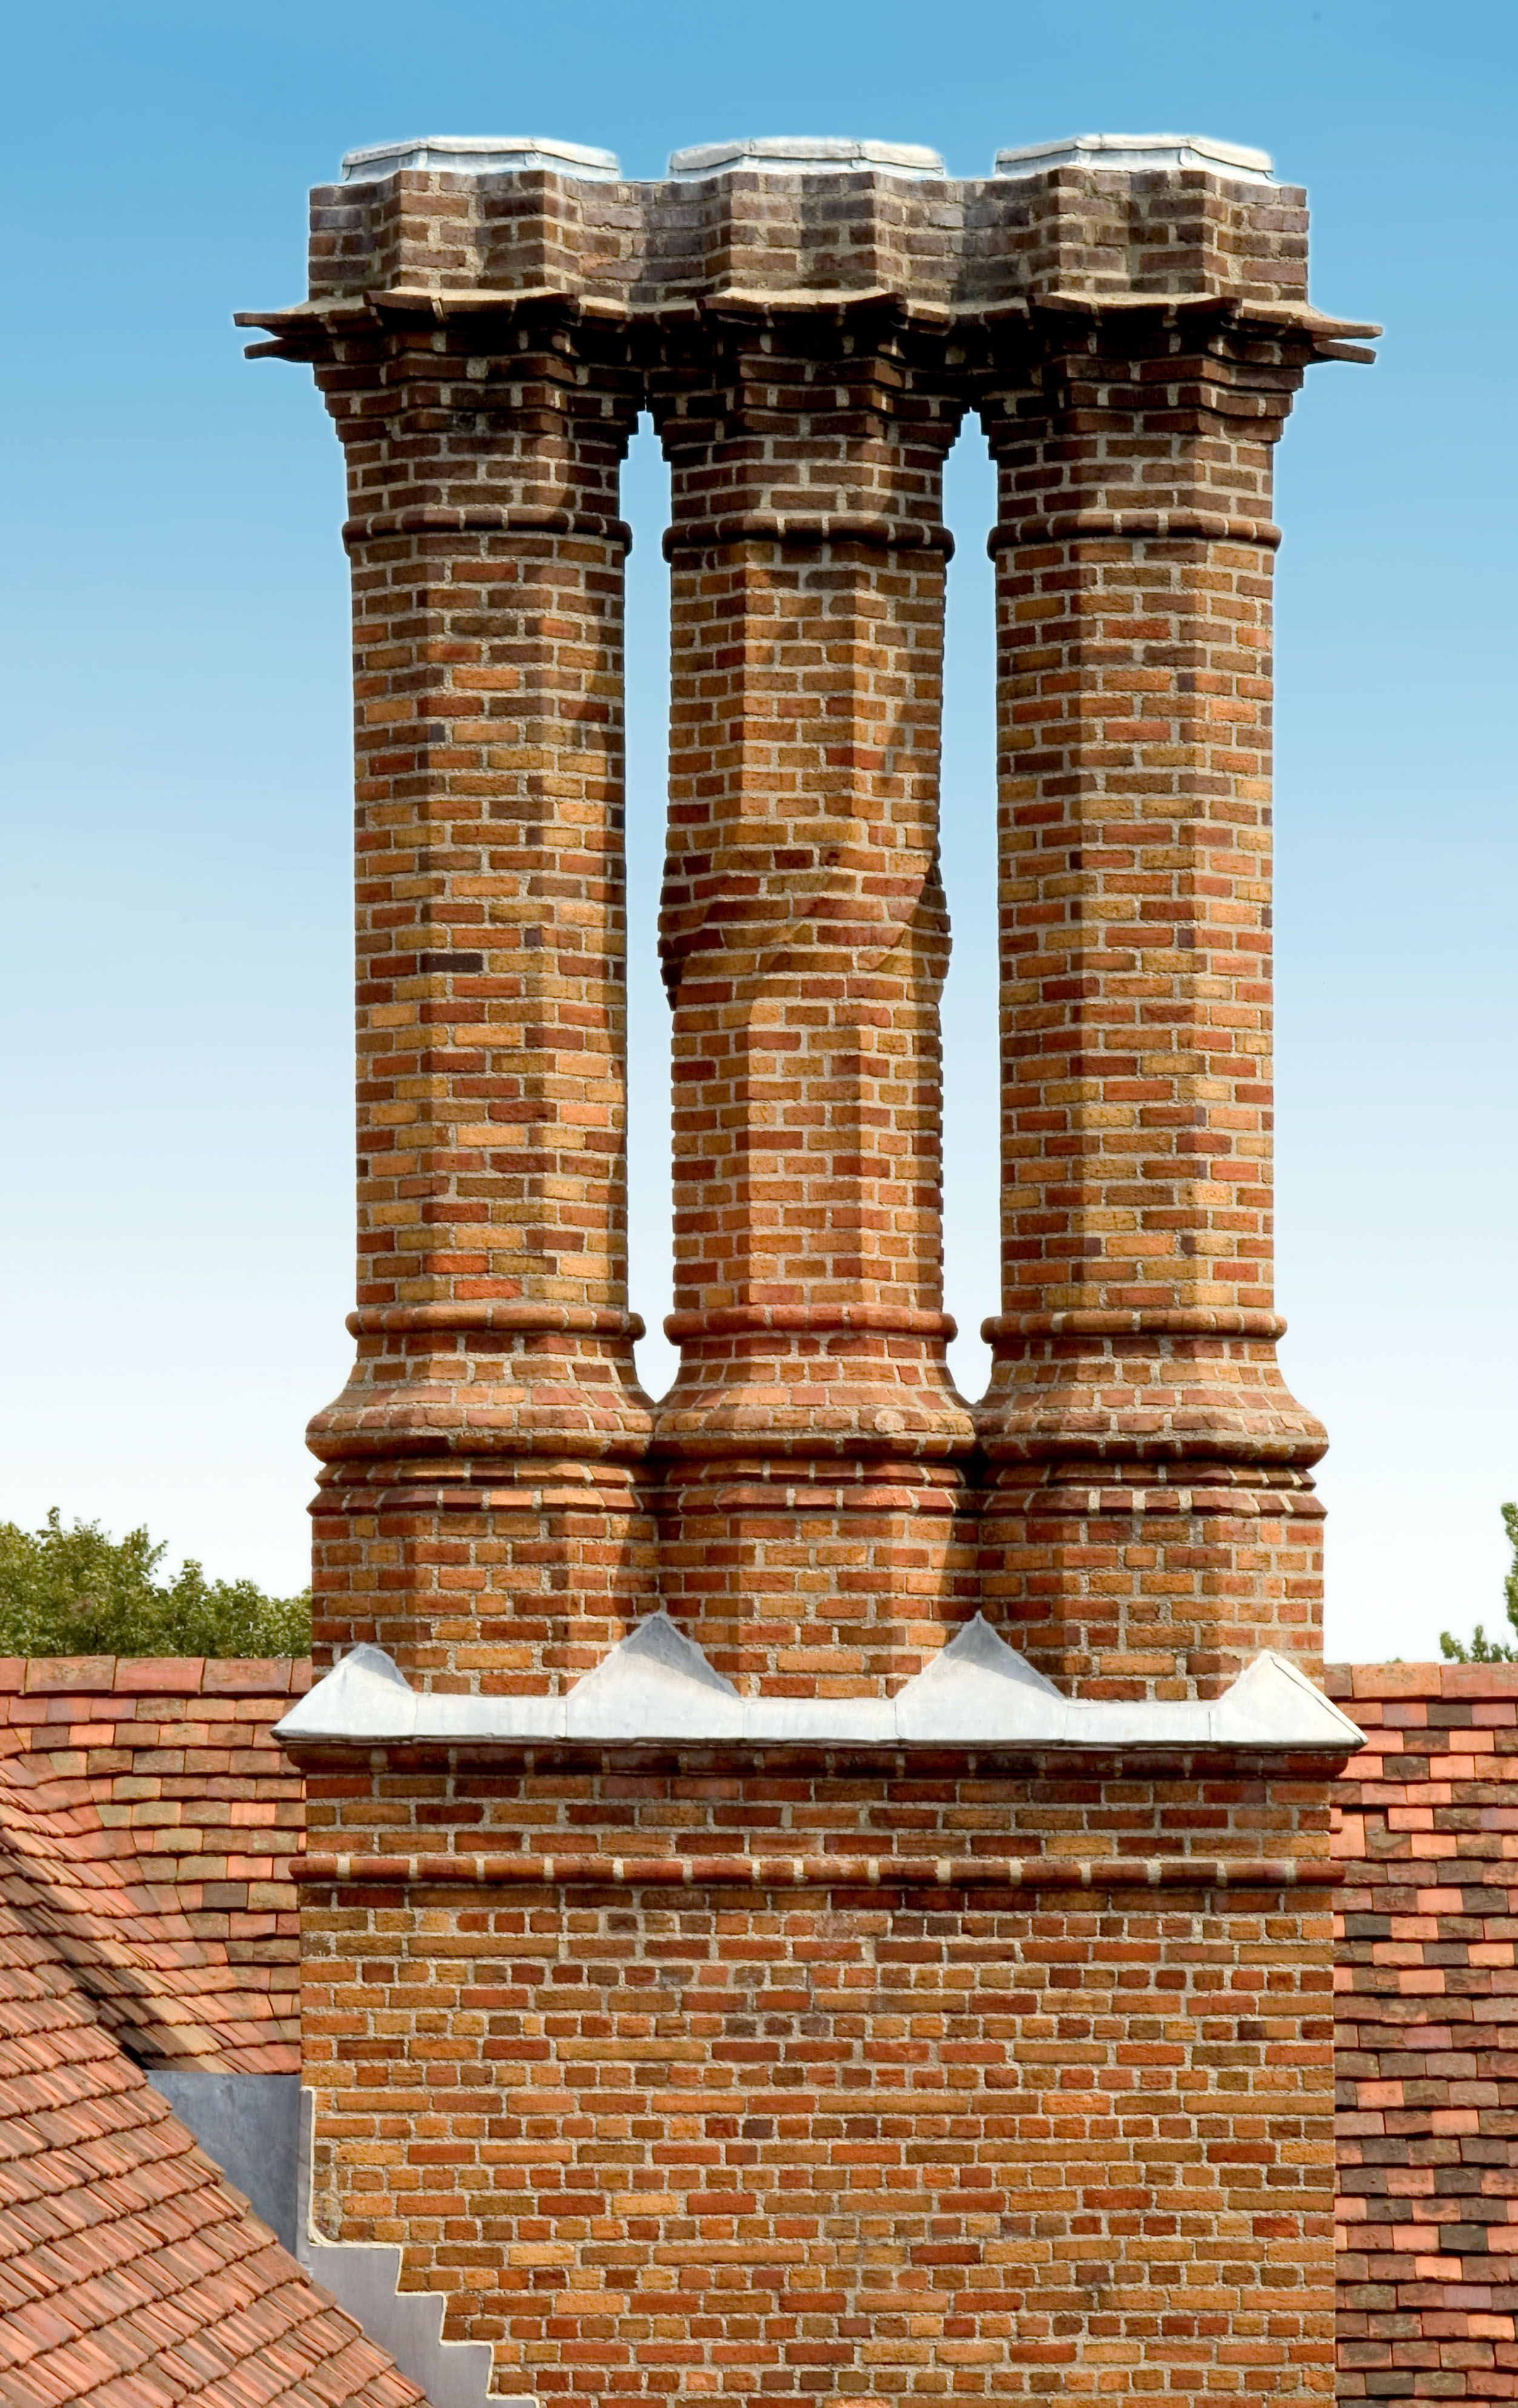 All 39 of Meadow Brook Hall's chimneys are unique.